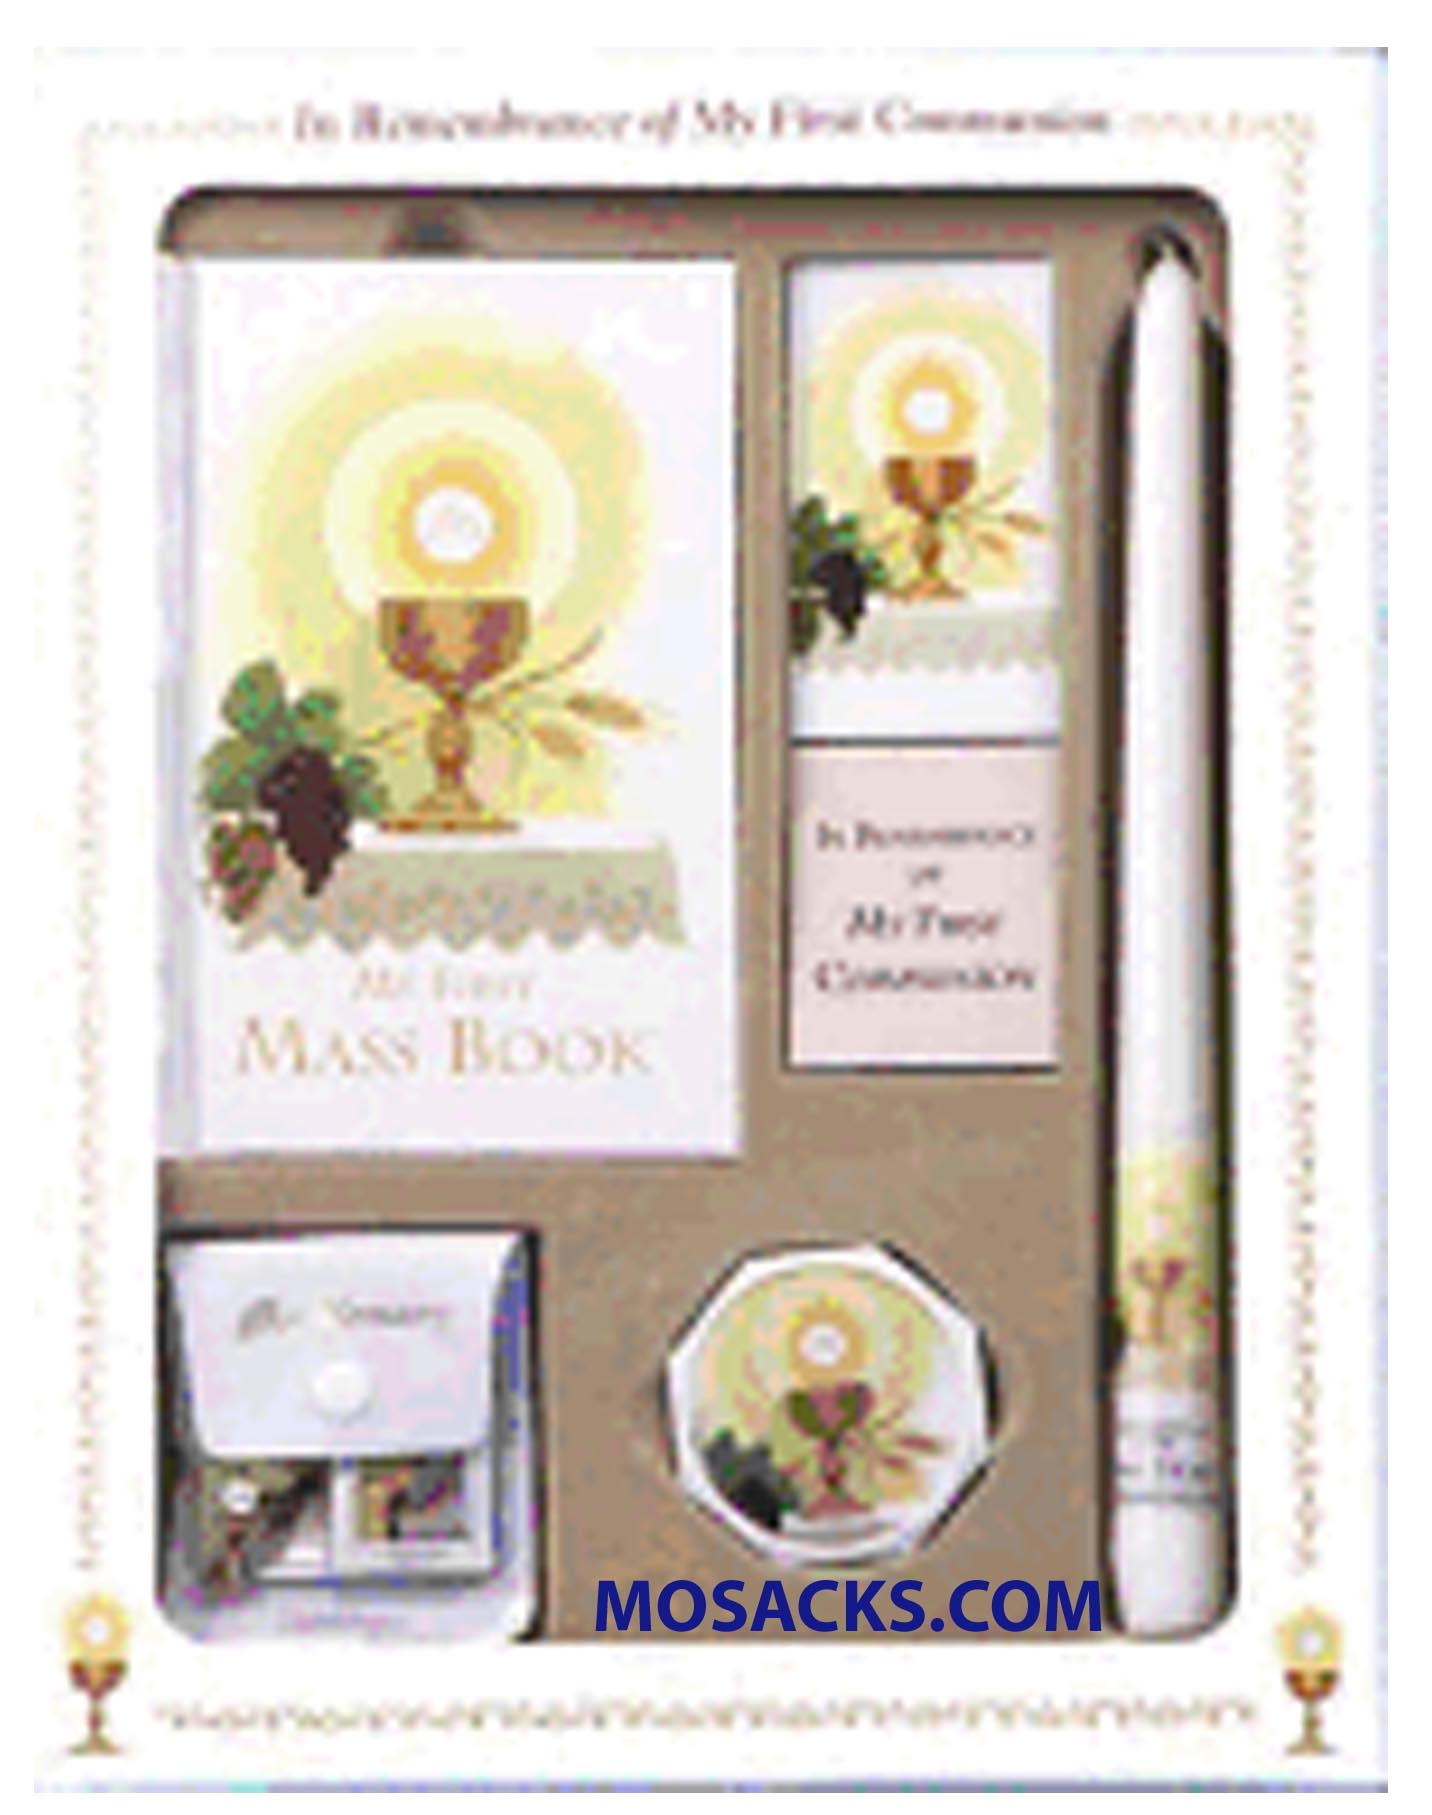 First Mass Book (My First Eucharist) Deluxe Set for girls 808/58G from Catholic Book Publishing 60-9780899428659